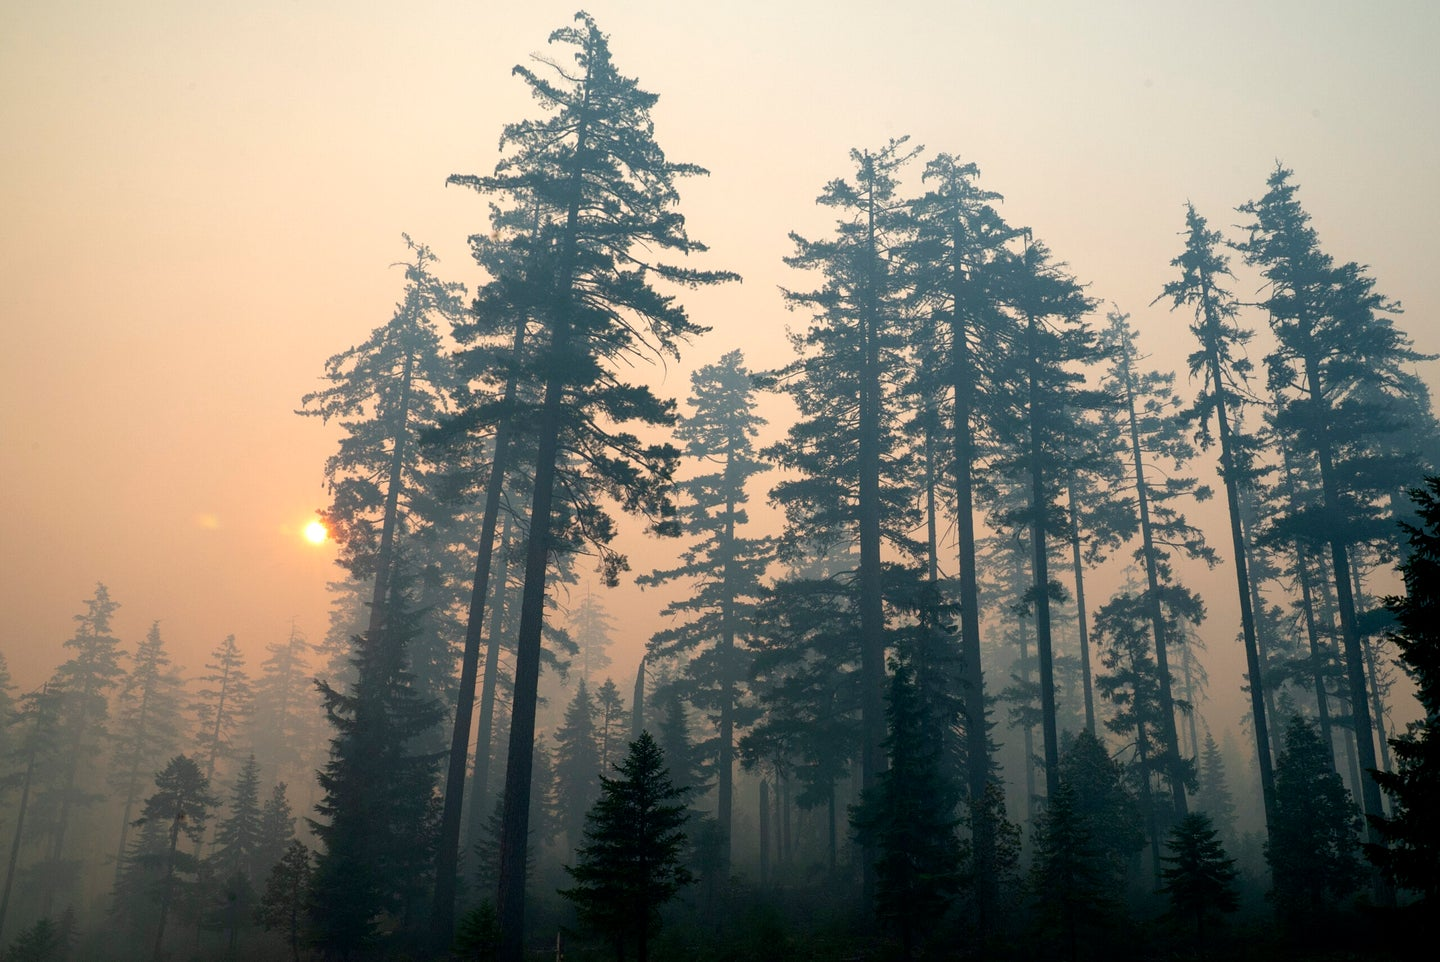 Western drought and wildfires spell bad news for wildlife.